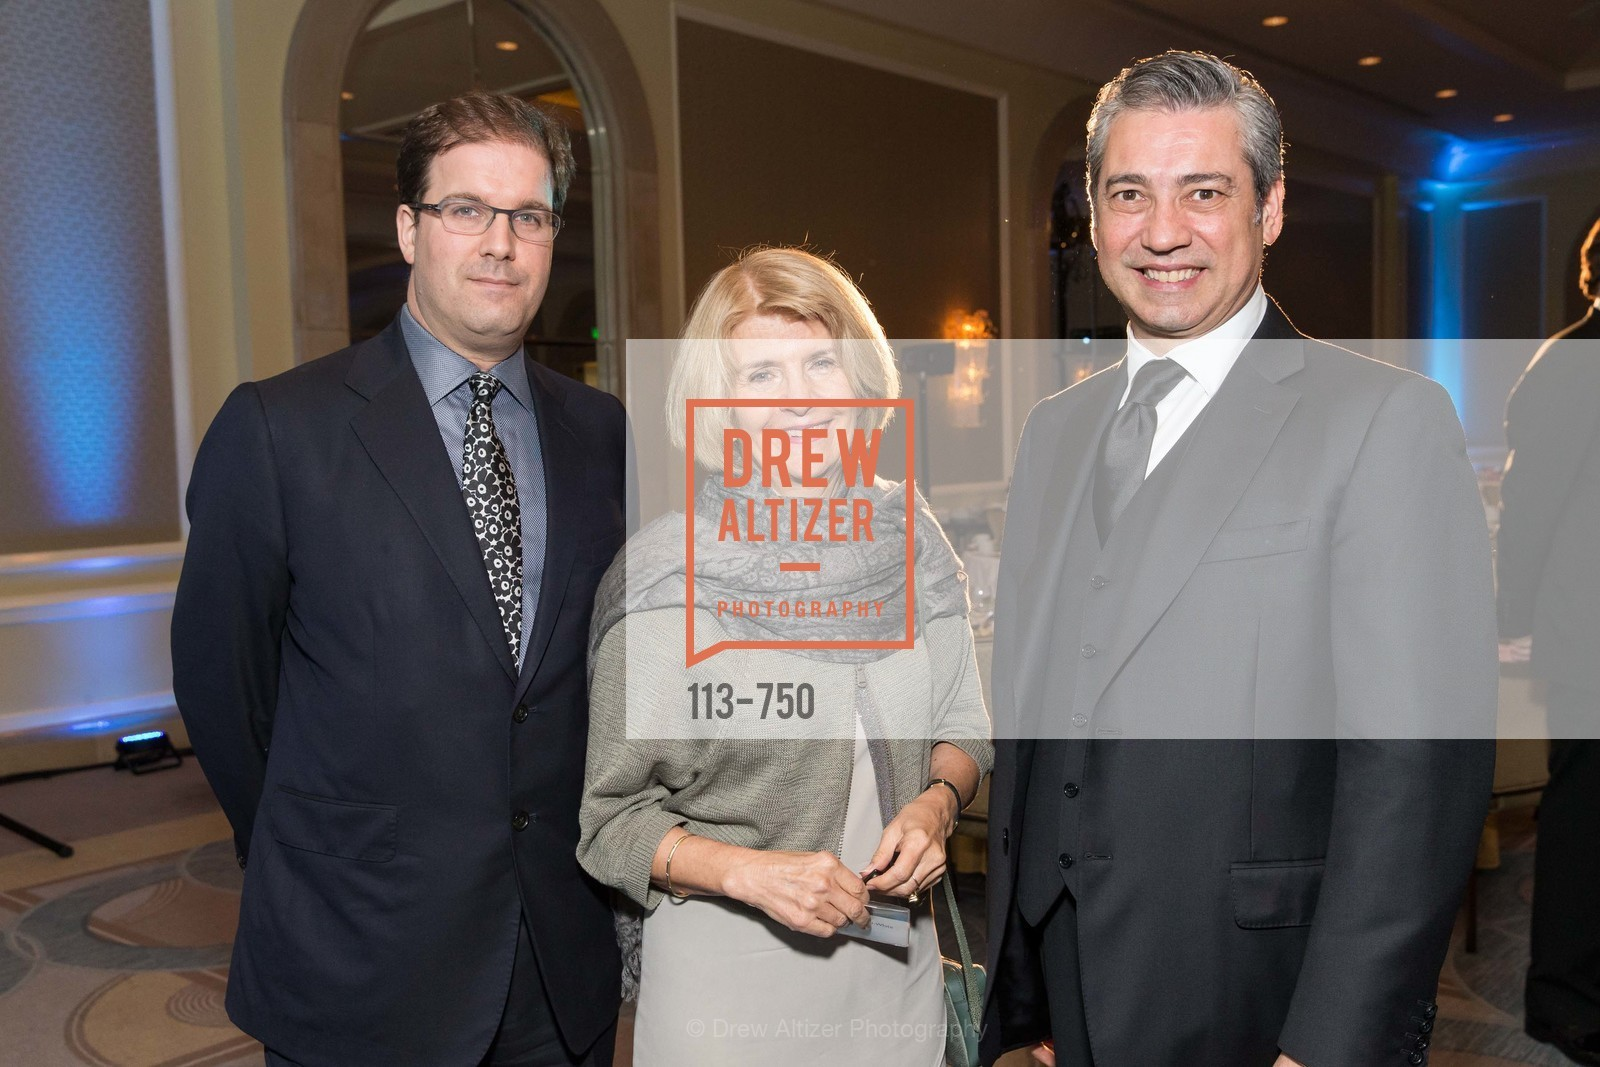 Matias Tarnopolsky, Annette Campbell-White, Nicola Luisotti, WORLD AFFAIRS COUNCIL Awards Dinner, US, May 26th, 2015,Drew Altizer, Drew Altizer Photography, full-service agency, private events, San Francisco photographer, photographer california